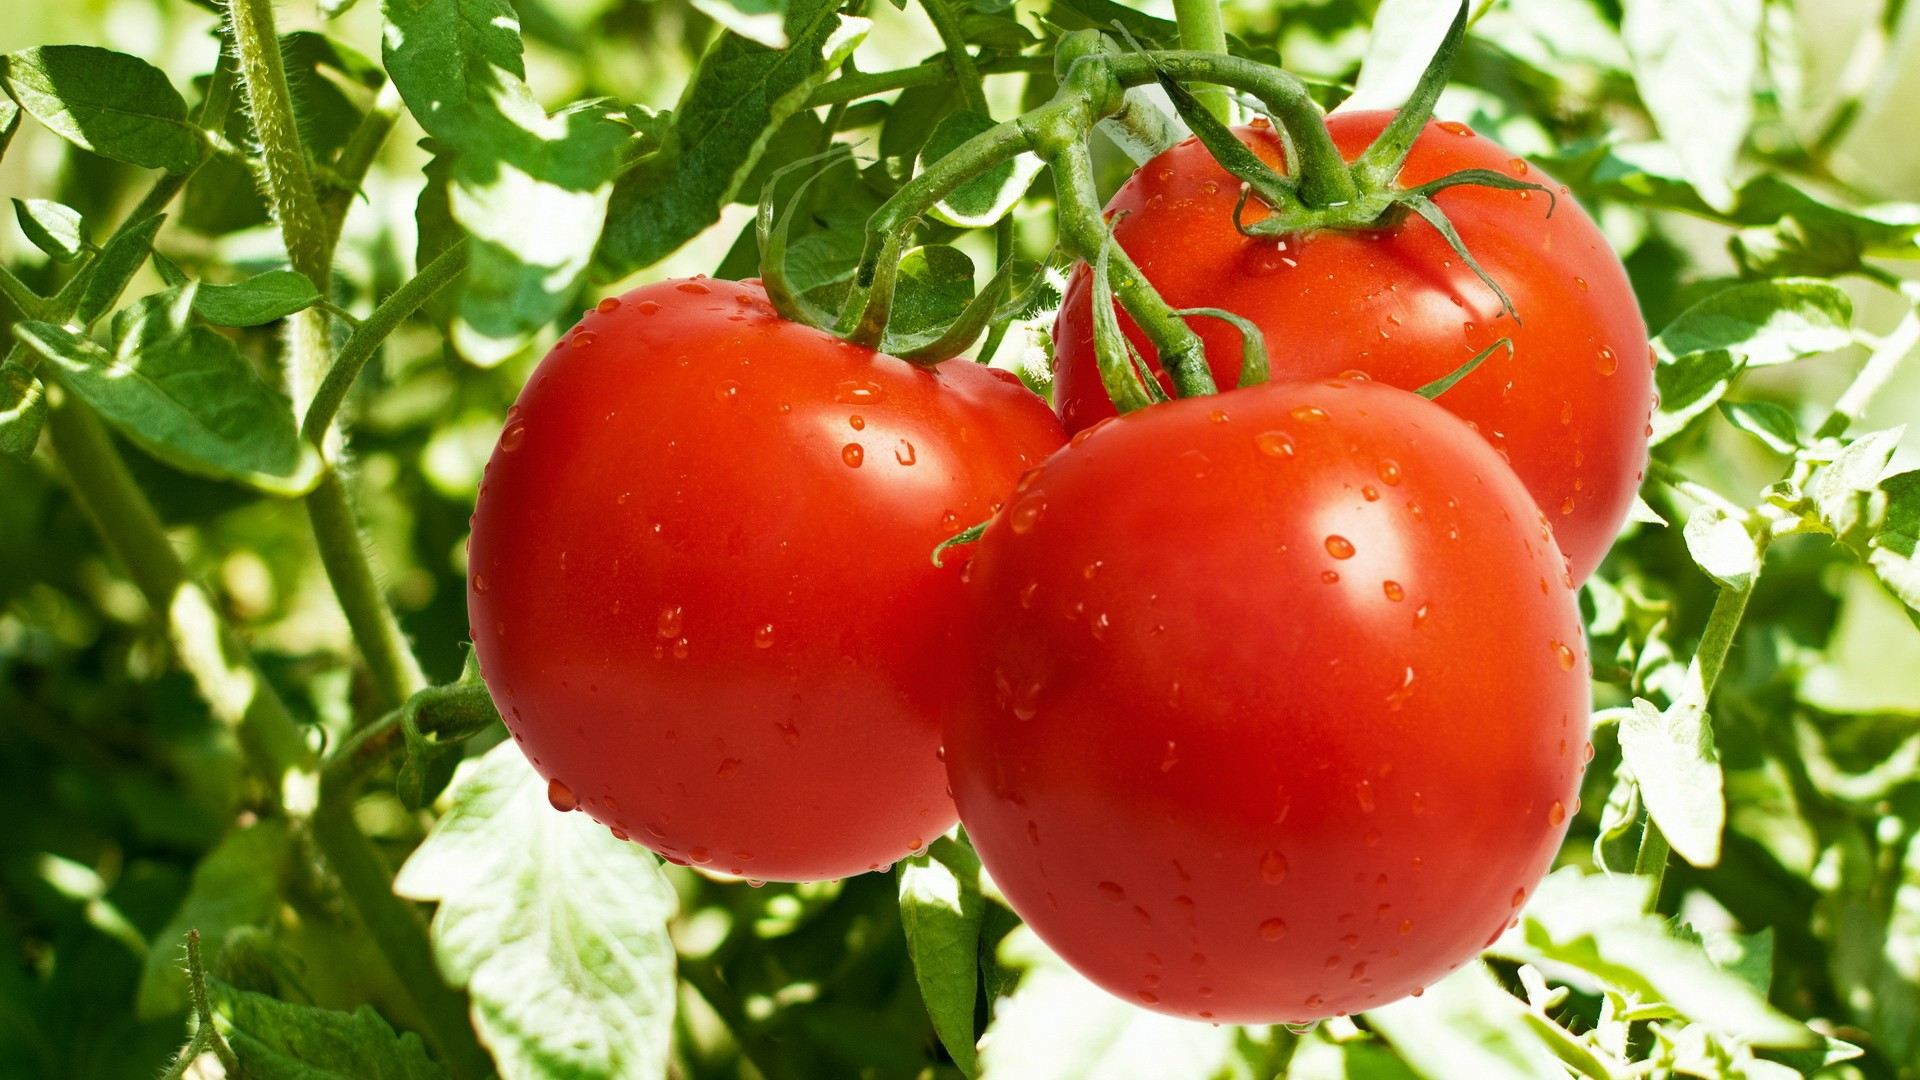 health-and-beauty-benefits-of-tomatoes